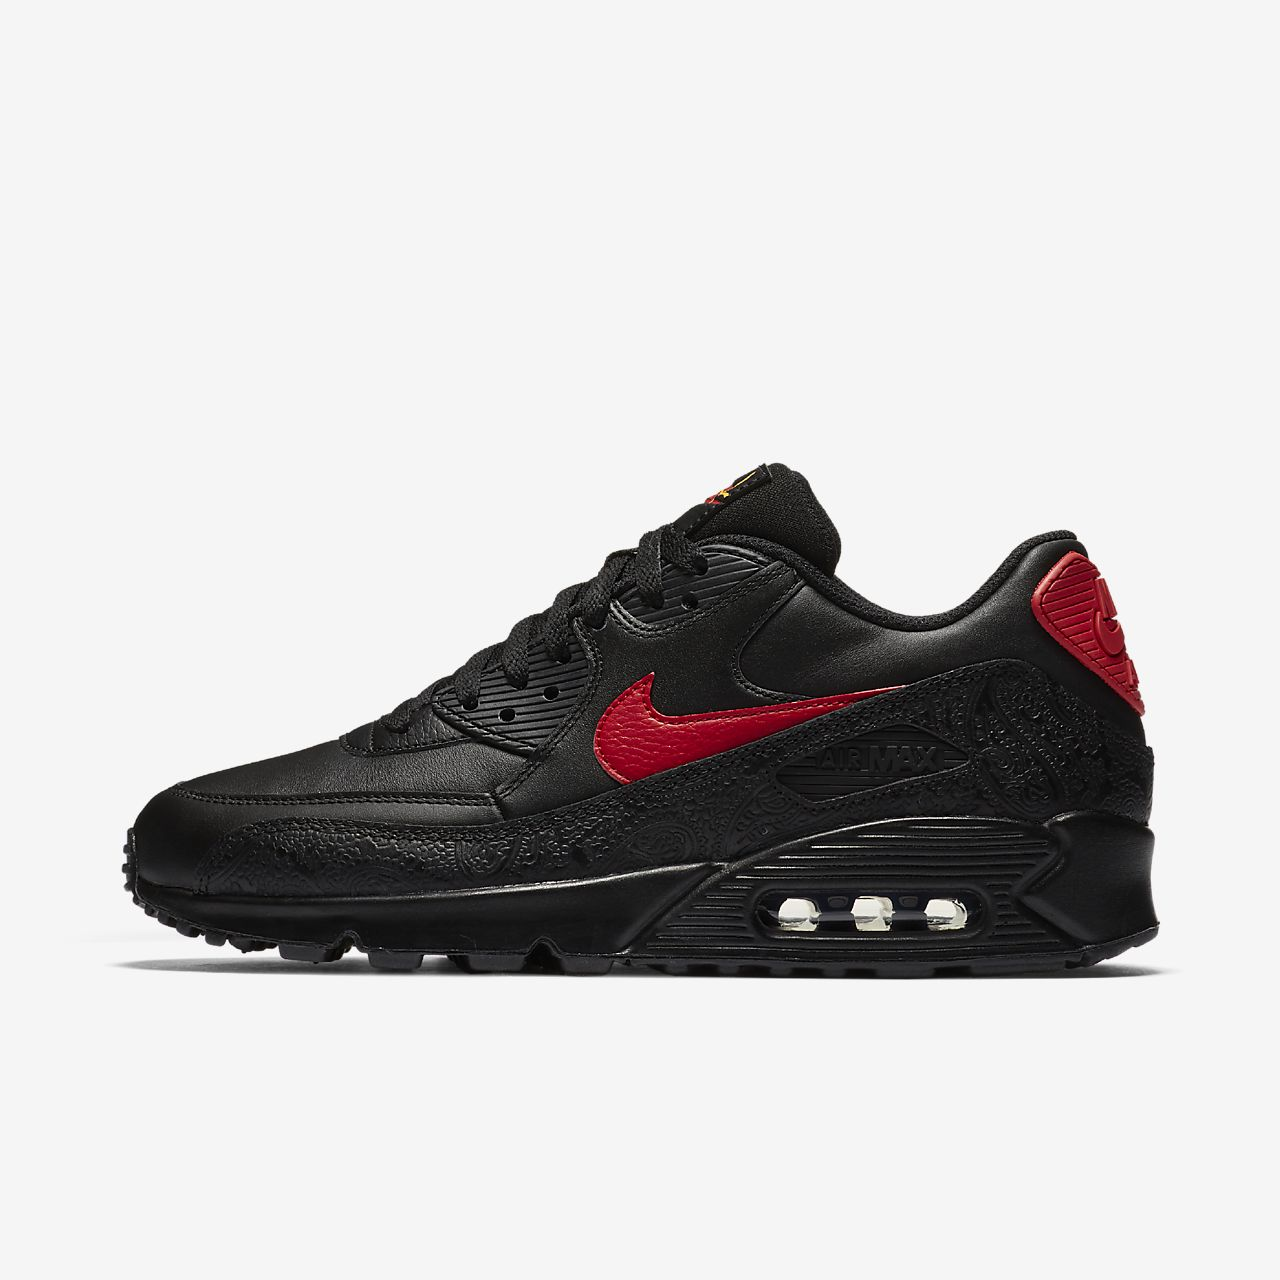 1922b0c014fc6 Acquista air max 90 nike - OFF65% sconti